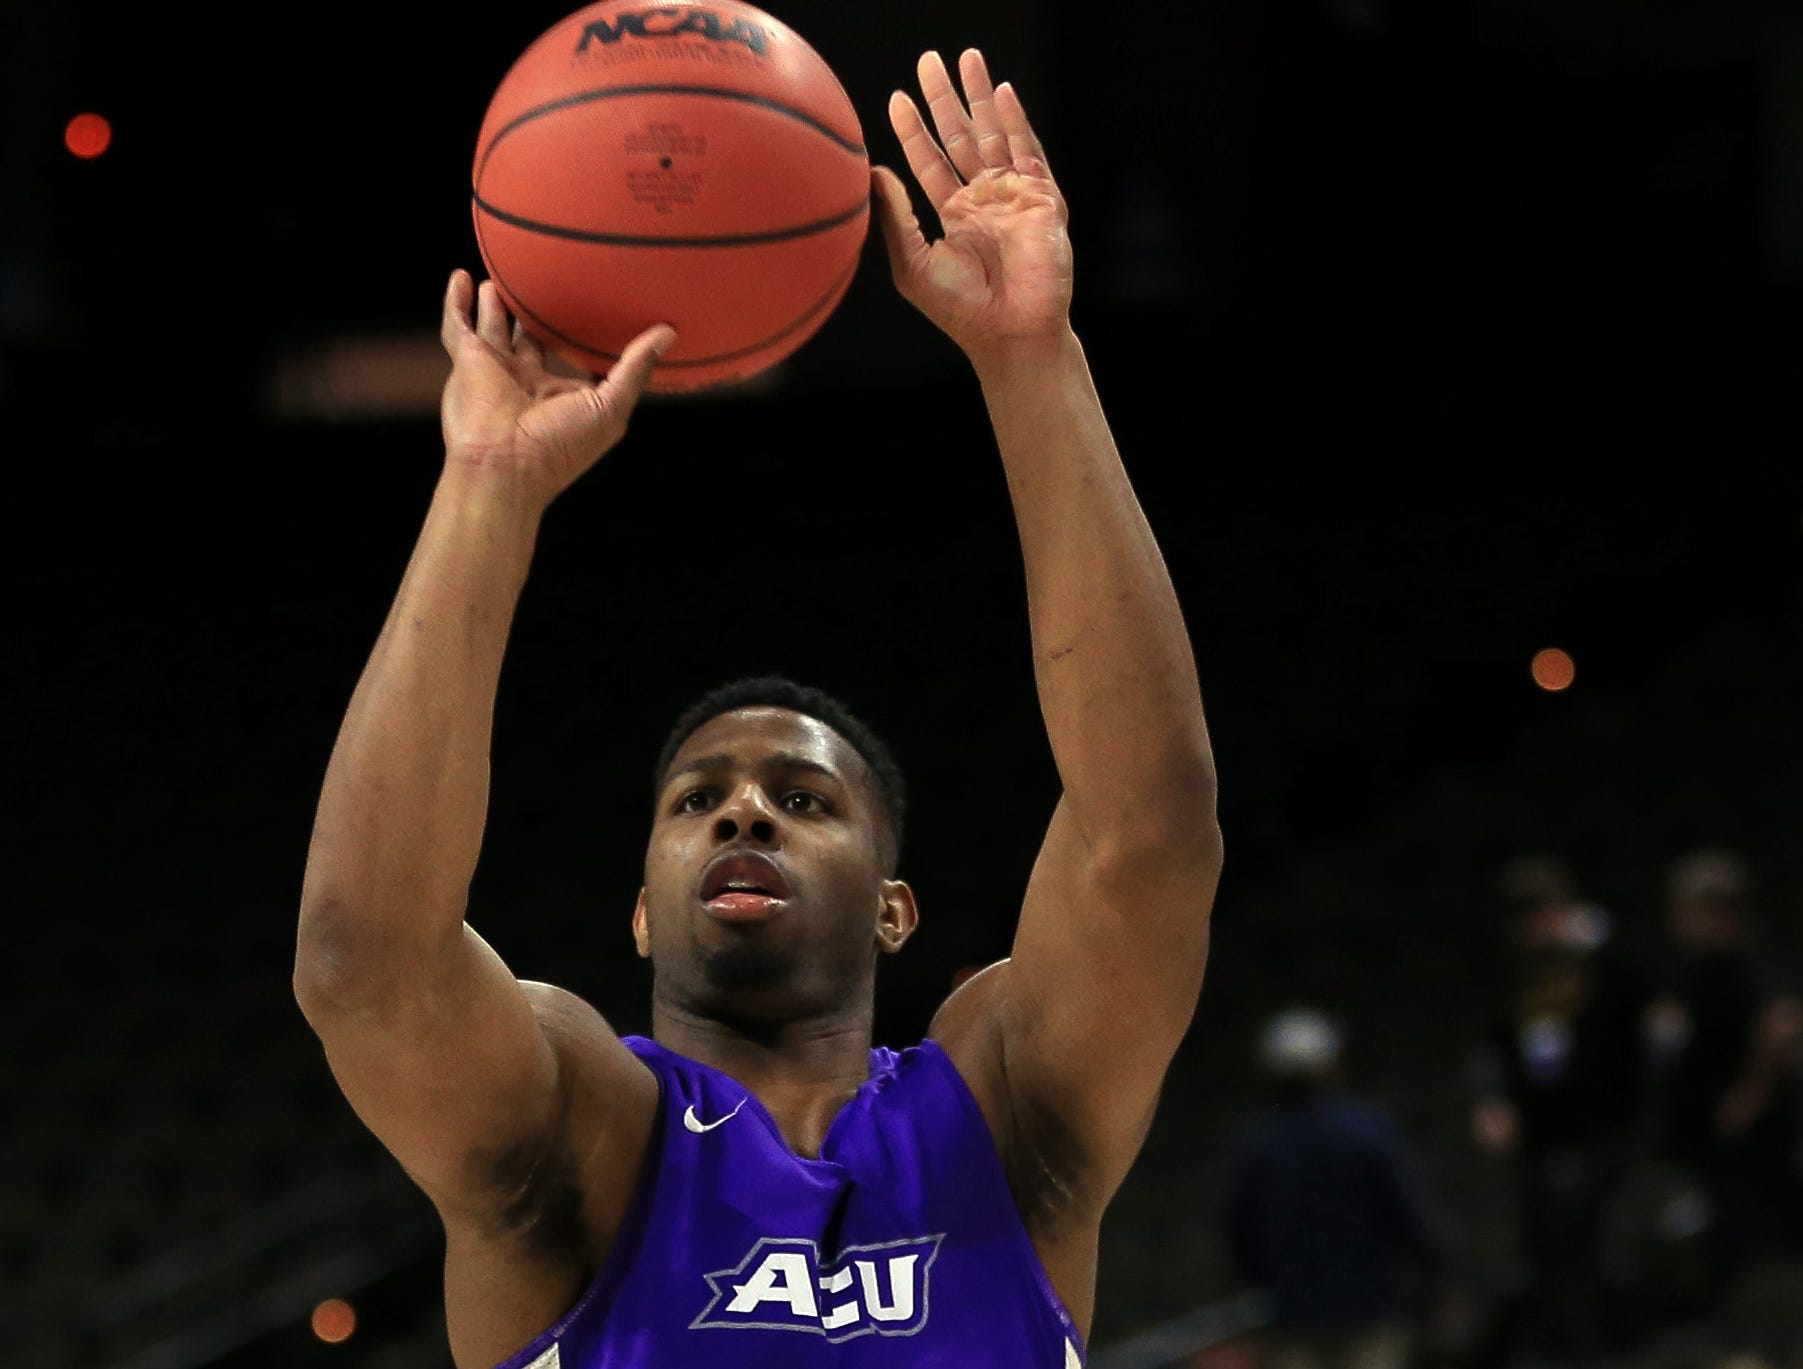 Mar 20, 2019; Jacksonville, FL, USA; Abilene Christian Wildcats guard Jaylen Franklin (0) during practice day before the first round of the 2019 NCAA Tournament at Jacksonville Veterans Memorial Arena. Mandatory Credit: Matt Stamey-USA TODAY Sports